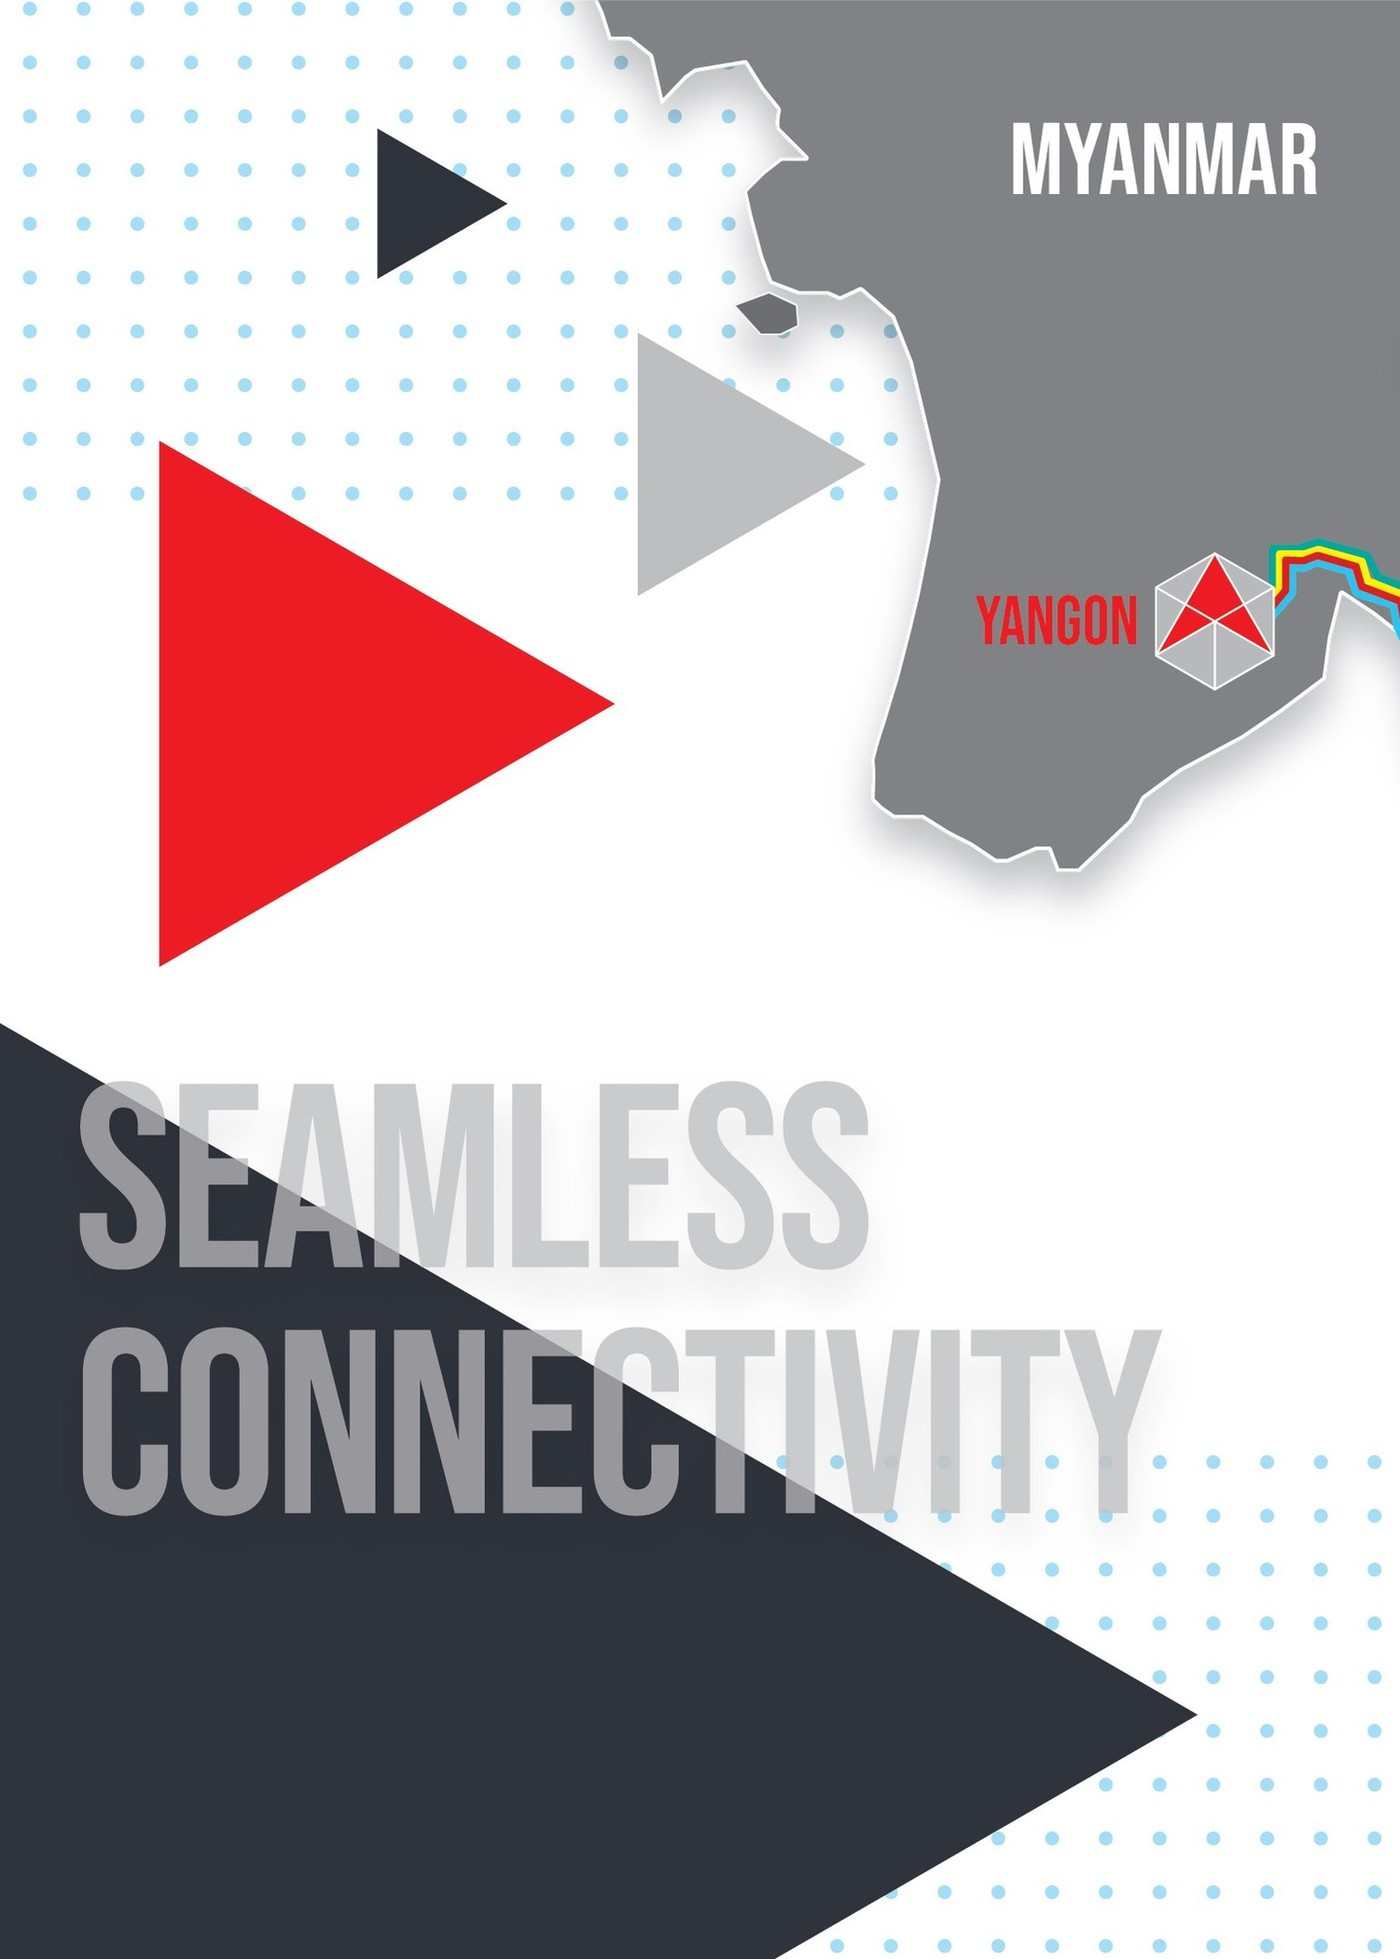 The Seamless Connectivity